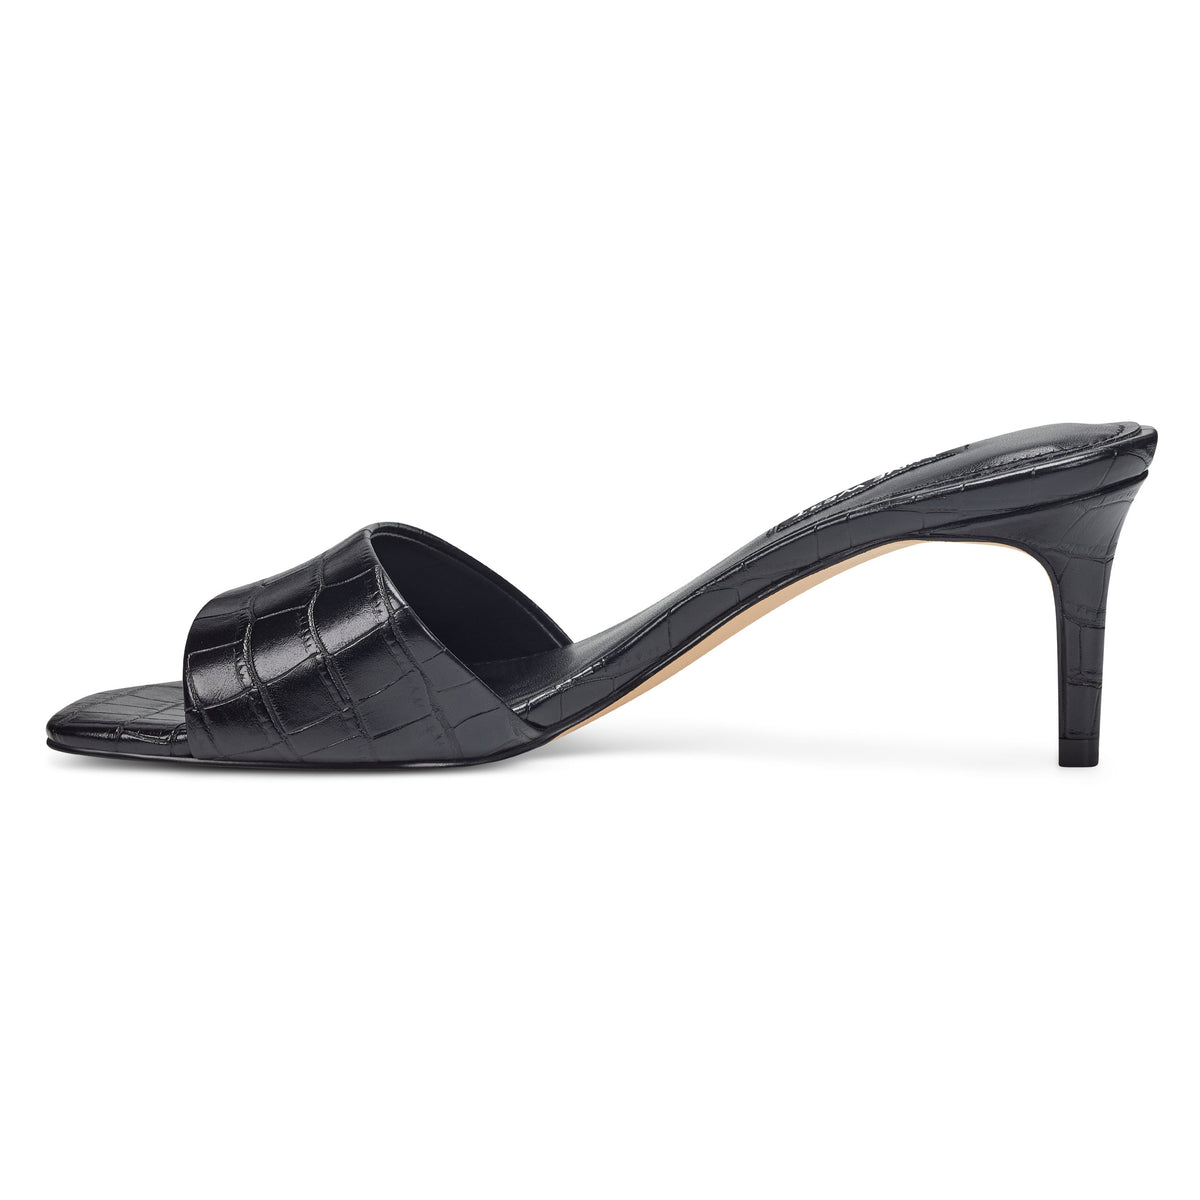 marina-heeled-slide-sandals-in-black-embossed-croco